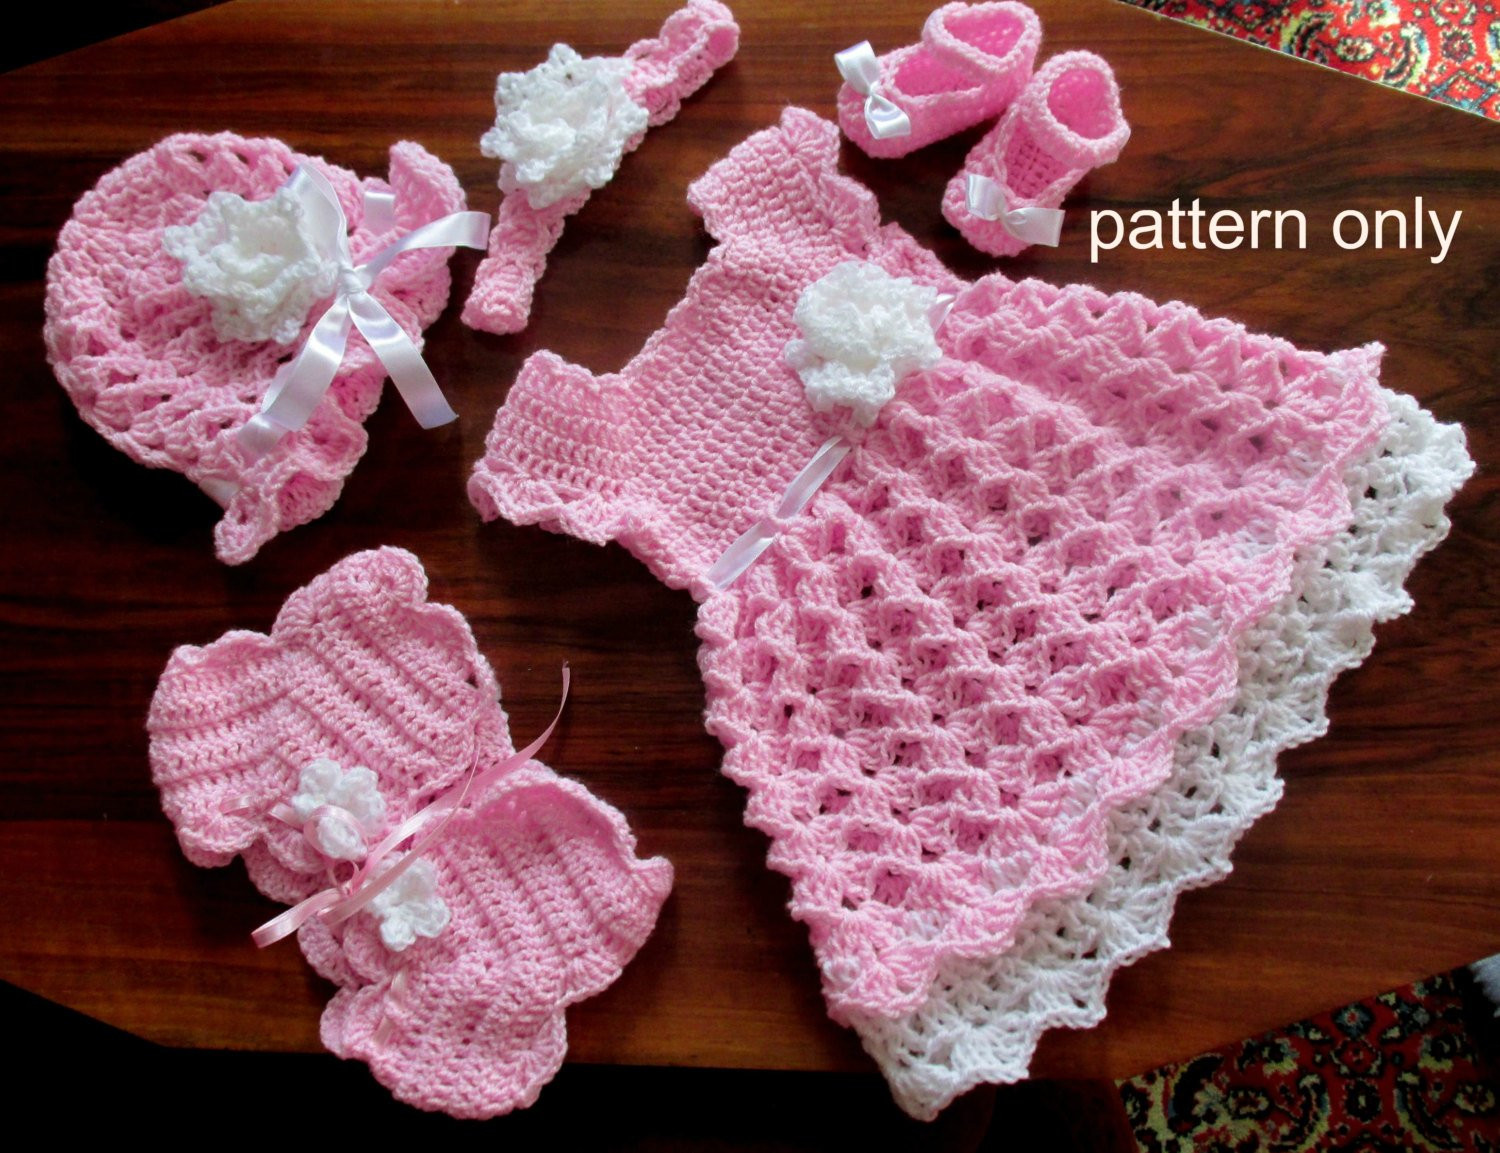 Baby Girl Crochet Patterns Unique Baby Dress Set Crochet Pattern Crochet Baby Dress Shrug Of Perfect 45 Models Baby Girl Crochet Patterns